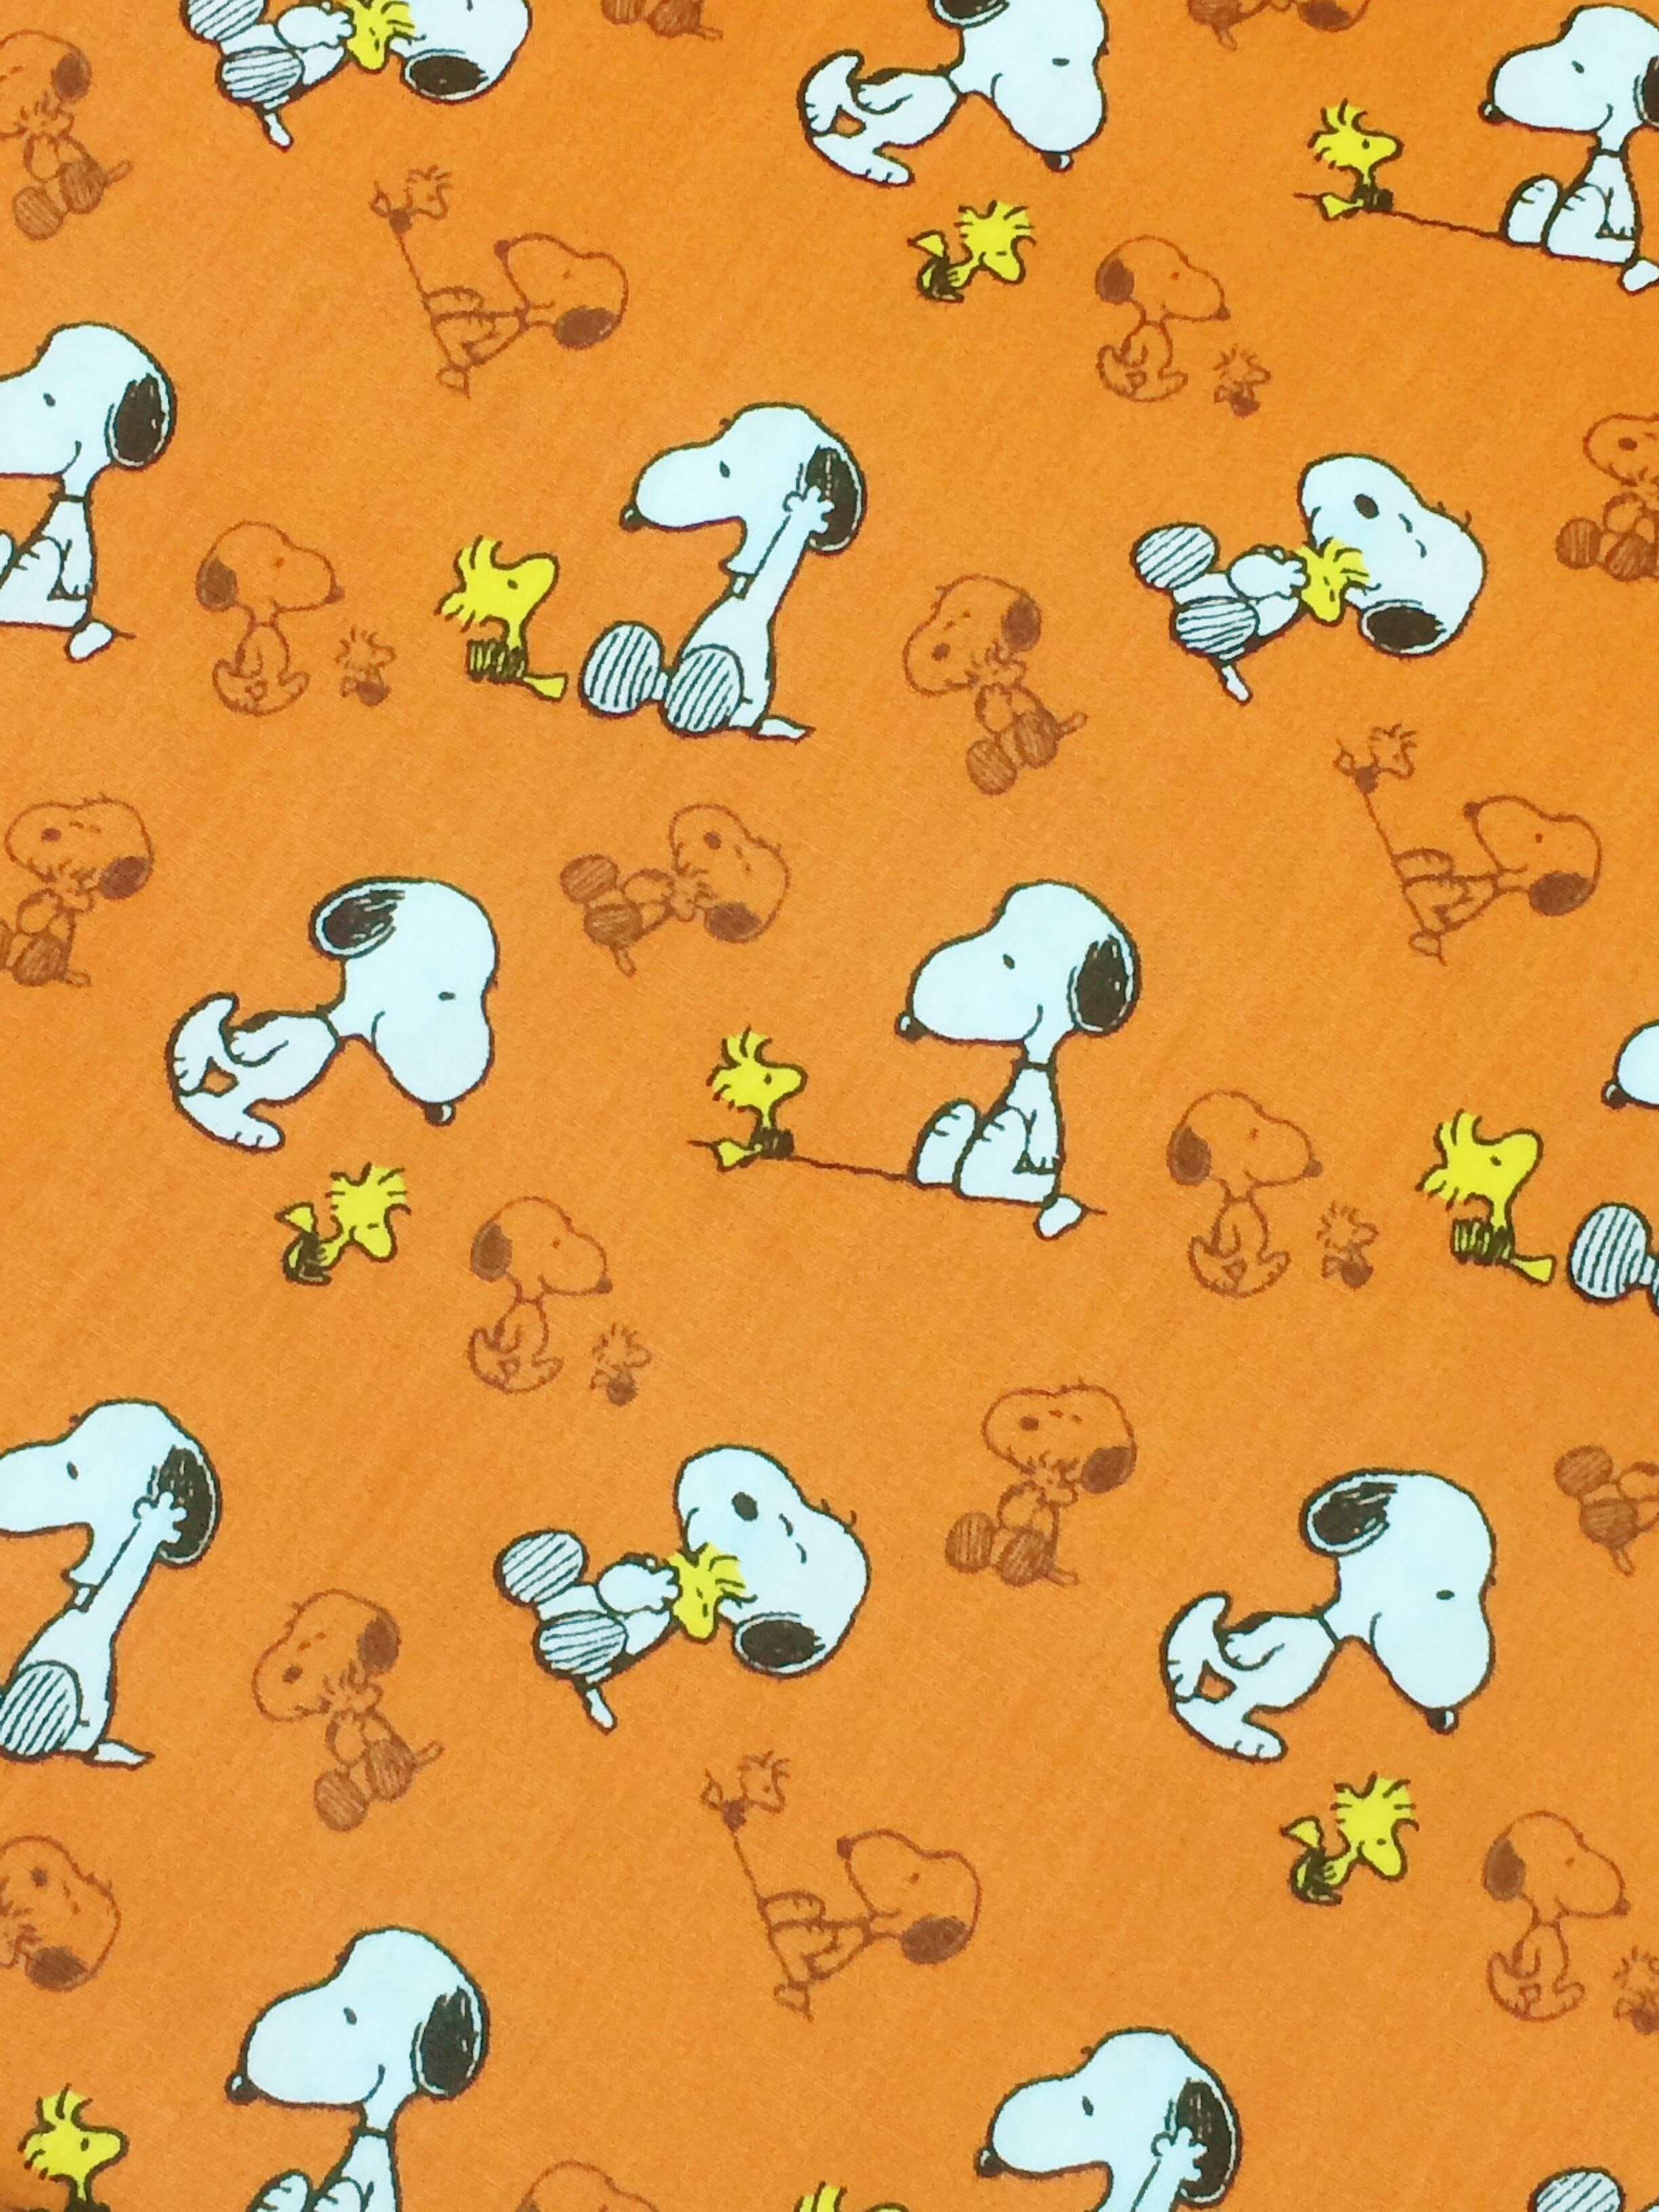 Pin by Wyñoña Childress on The Peanuts Gang... Snoopy